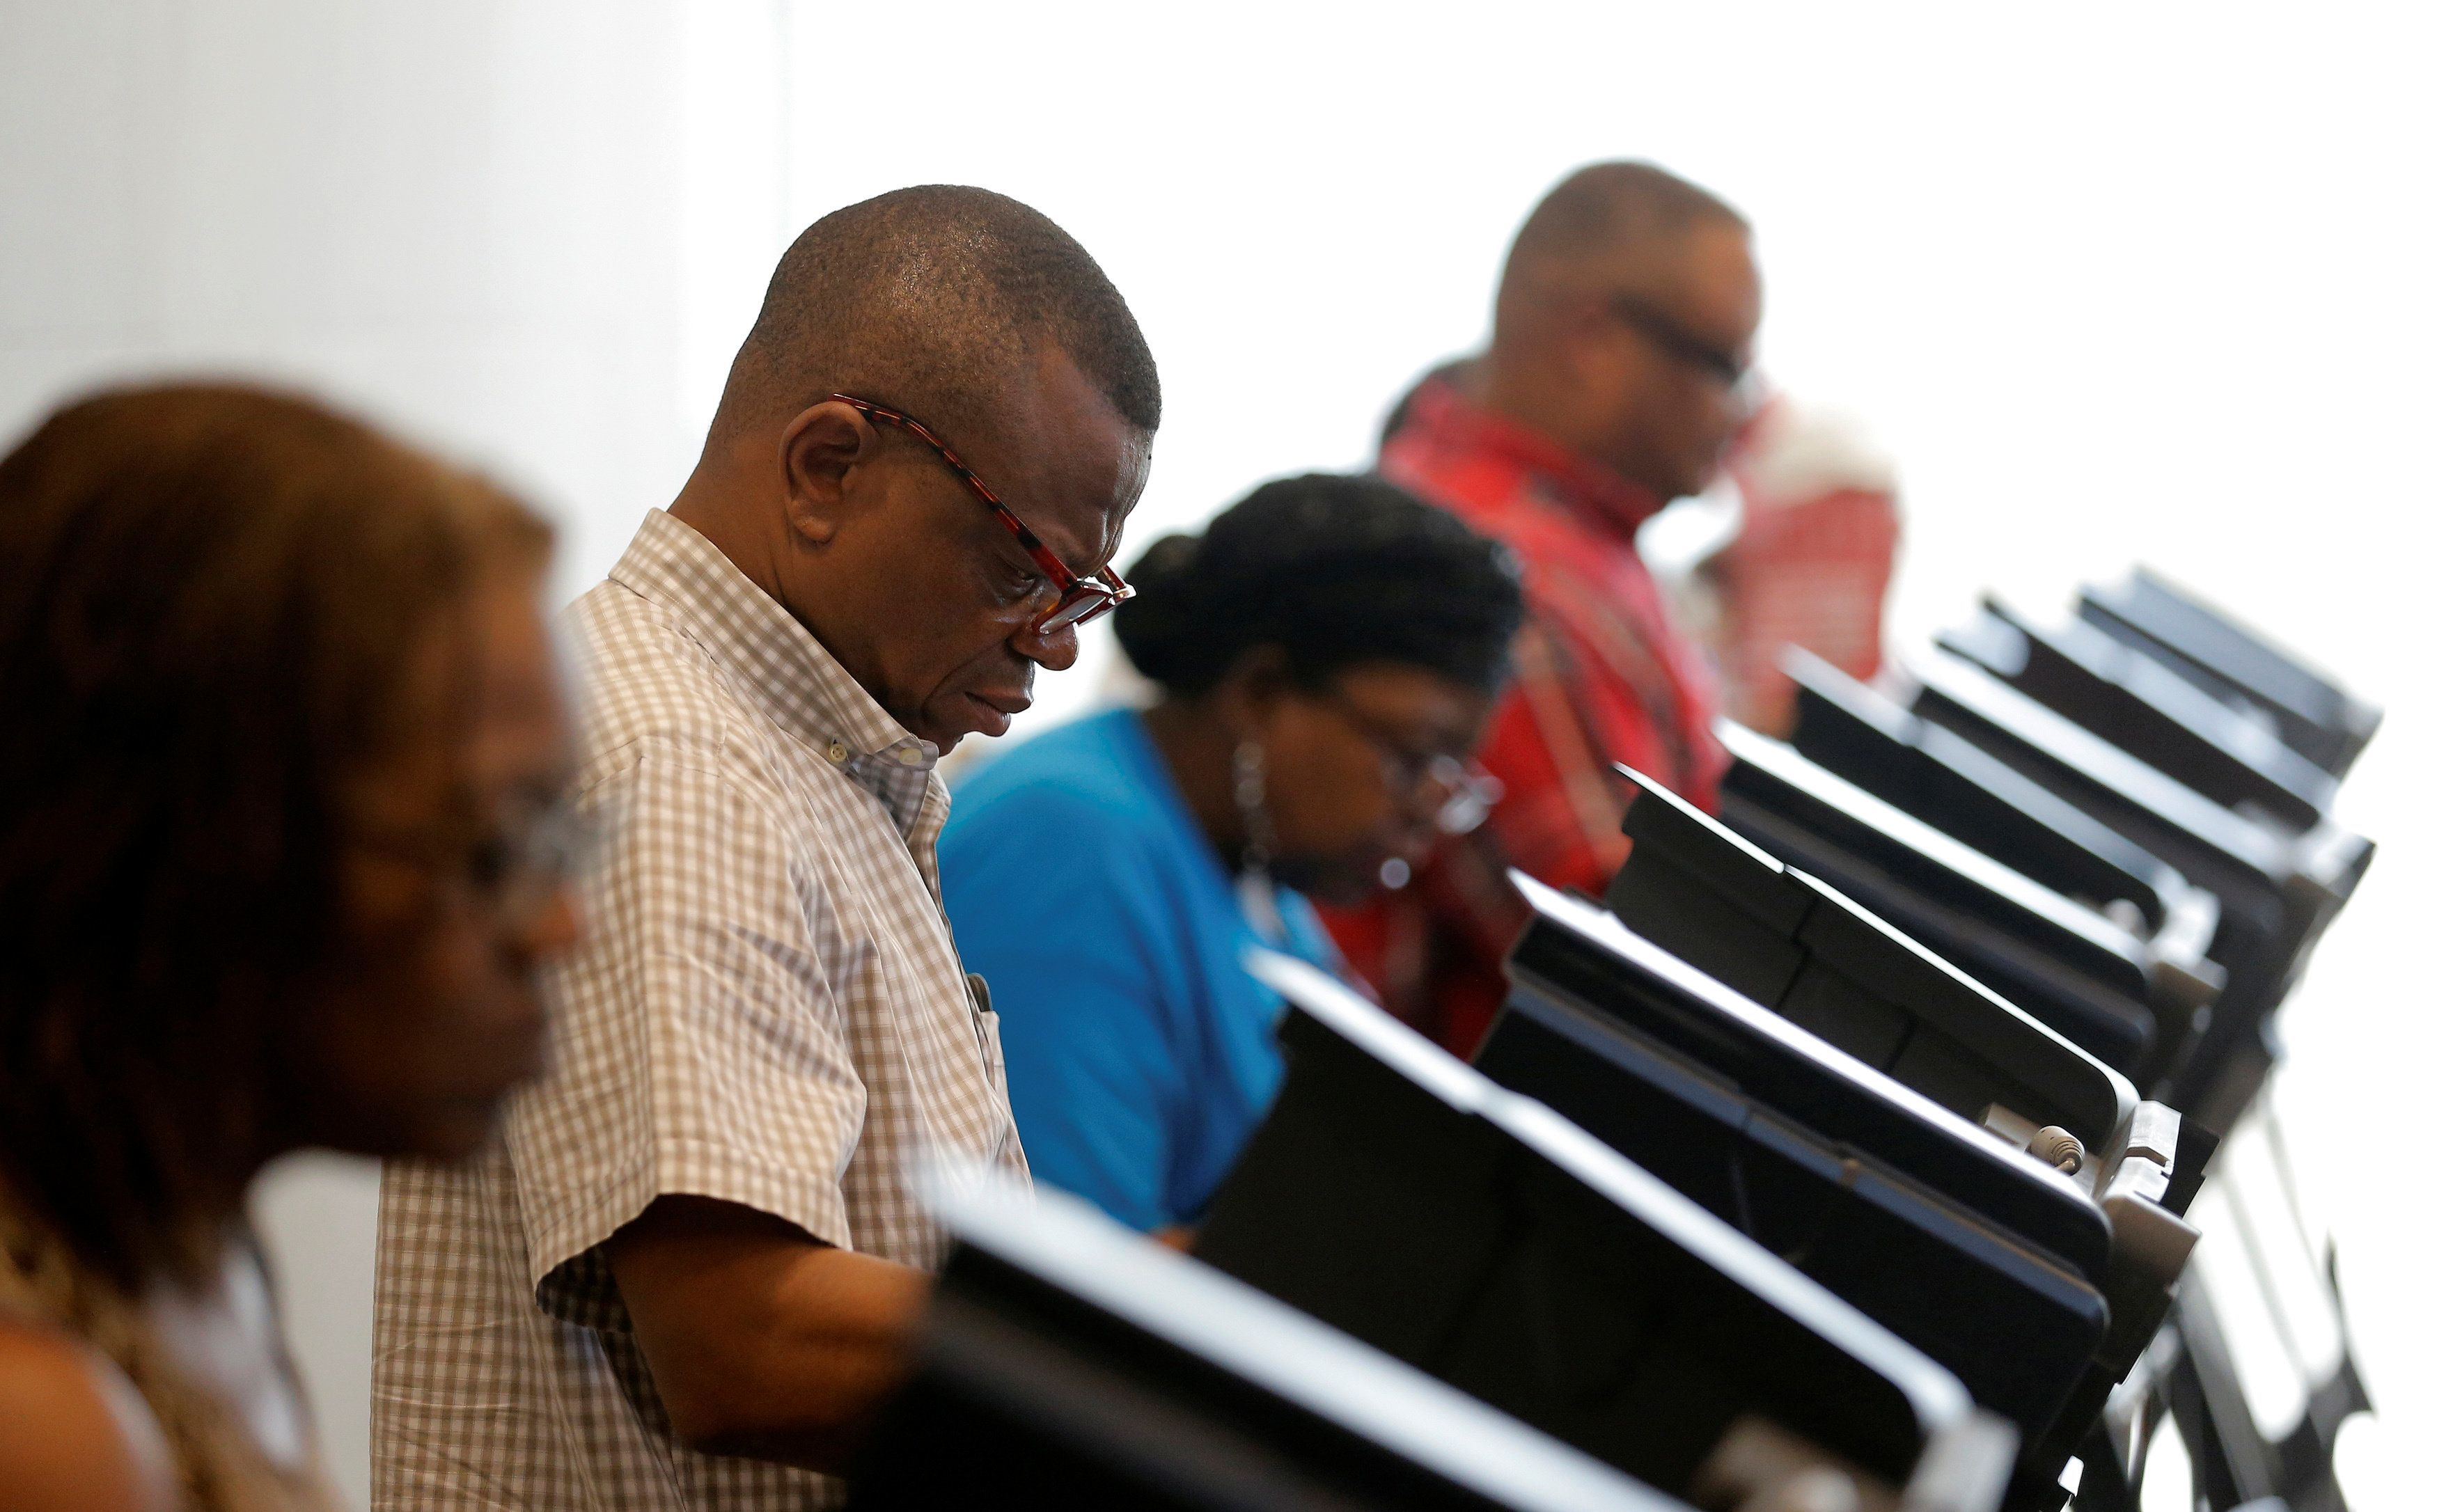 North Carolinians casts their ballots during early voting at the Beatties Ford Library in Charlotte.